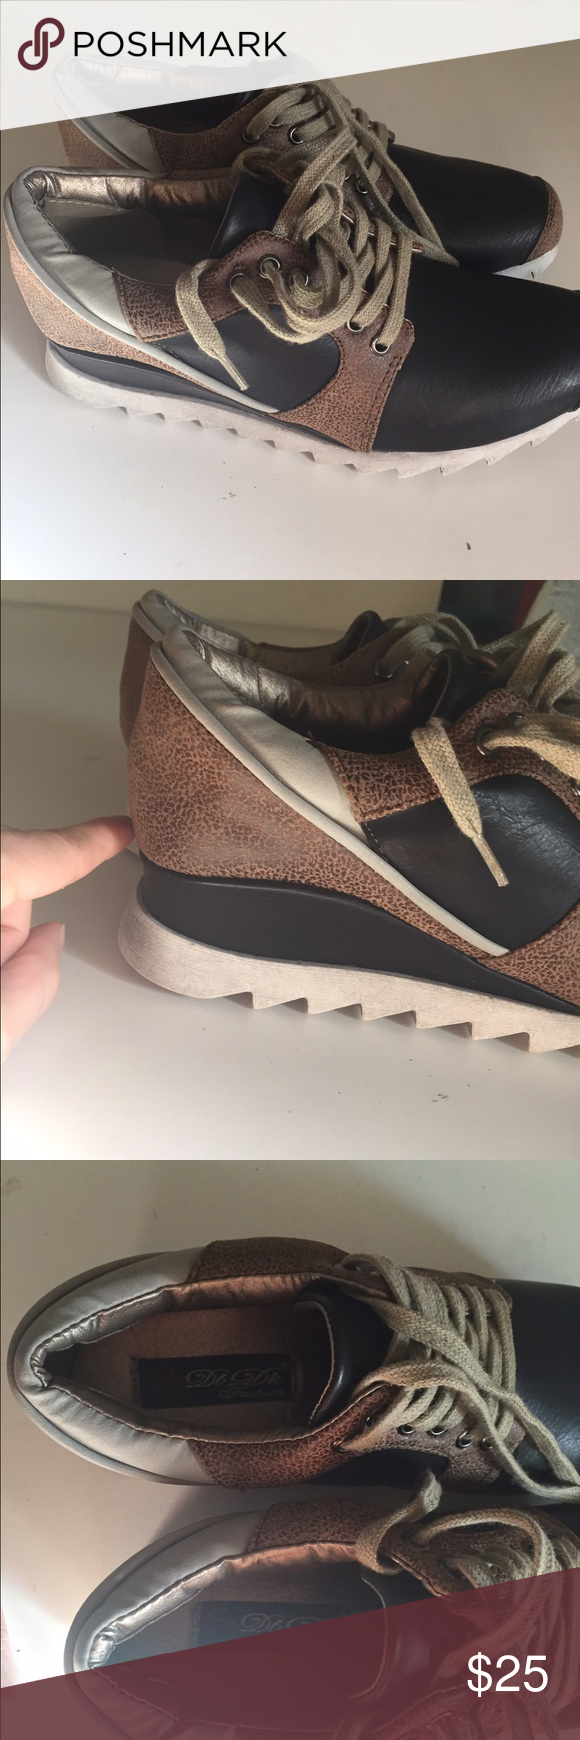 """NWT sneaker with hidden heel Black and and brown leather look shoes with a hidden heel (provides ~3/4"""" lift over the sole of the shoes). Very comfortable around the ankle too. DBDK Fashion brand. Shoes Sneakers"""